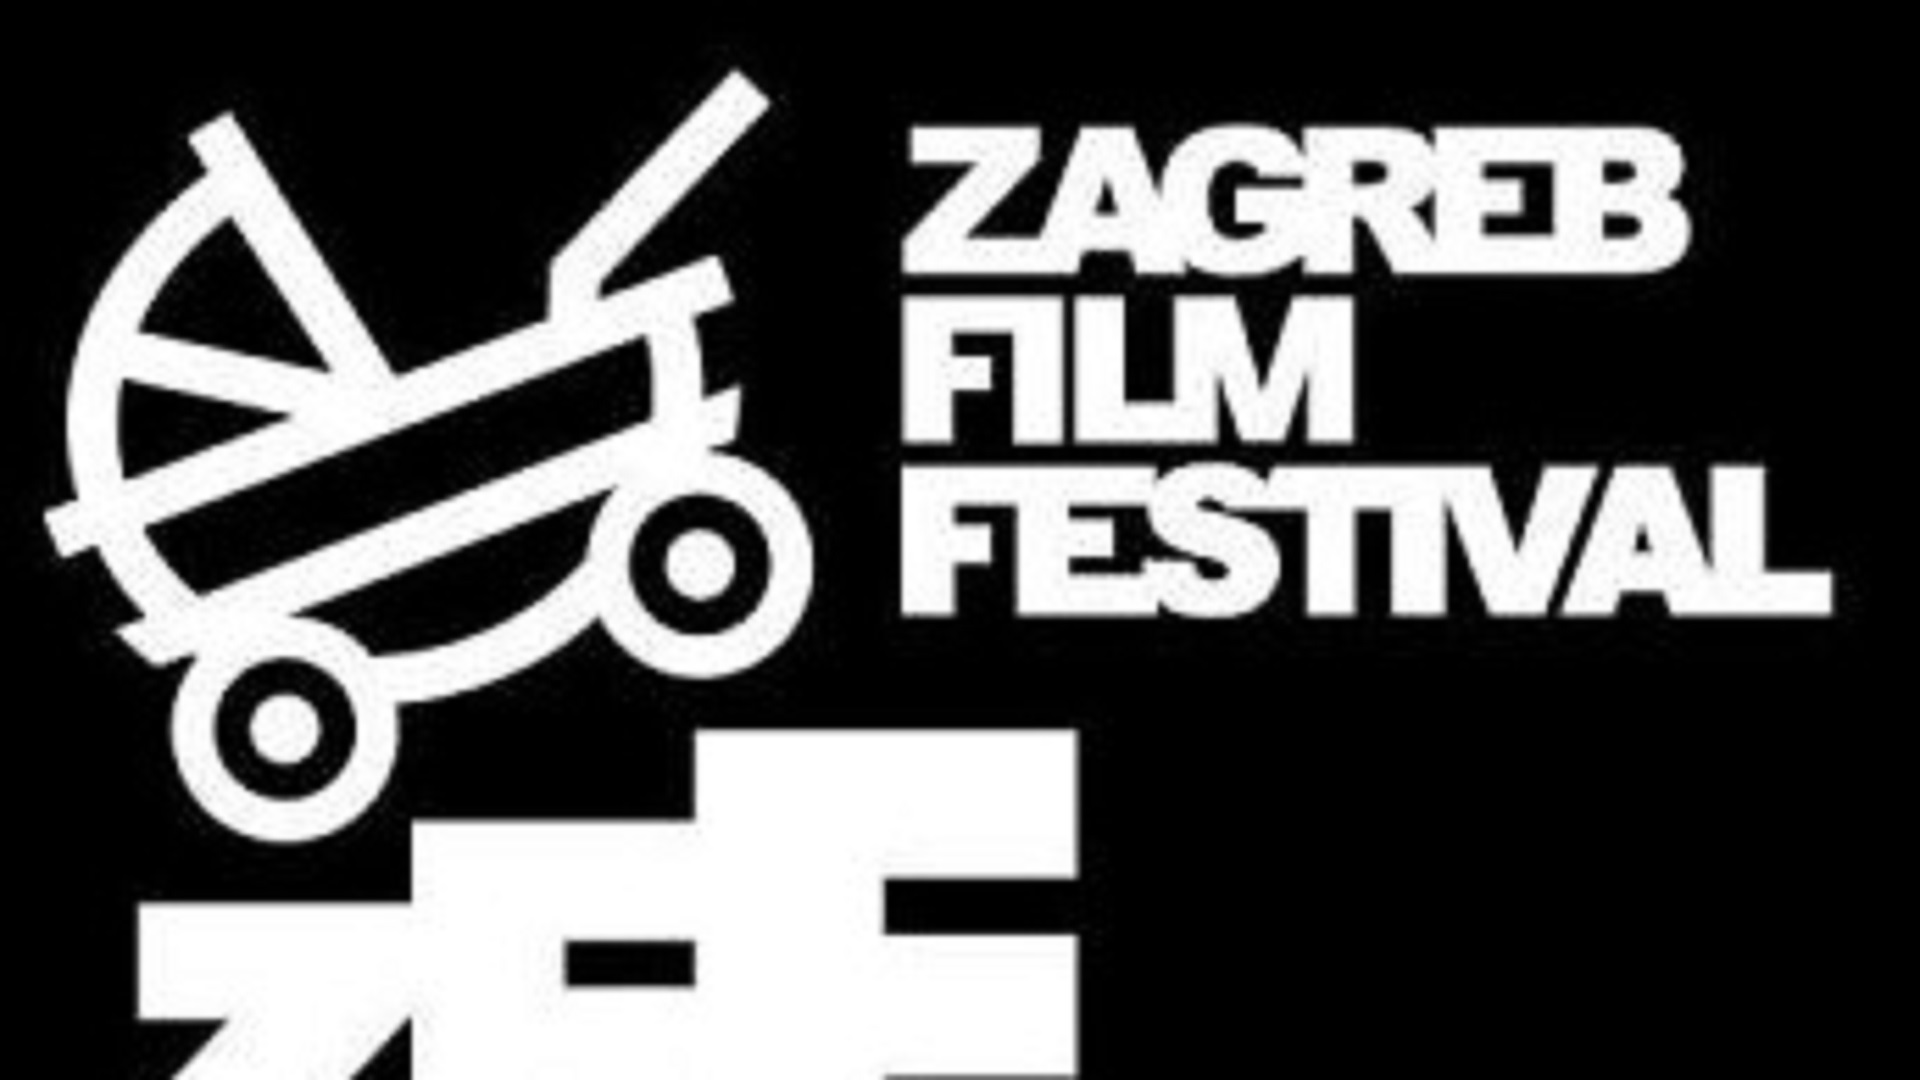 One of Us wins prize at Zagreb Film Festival